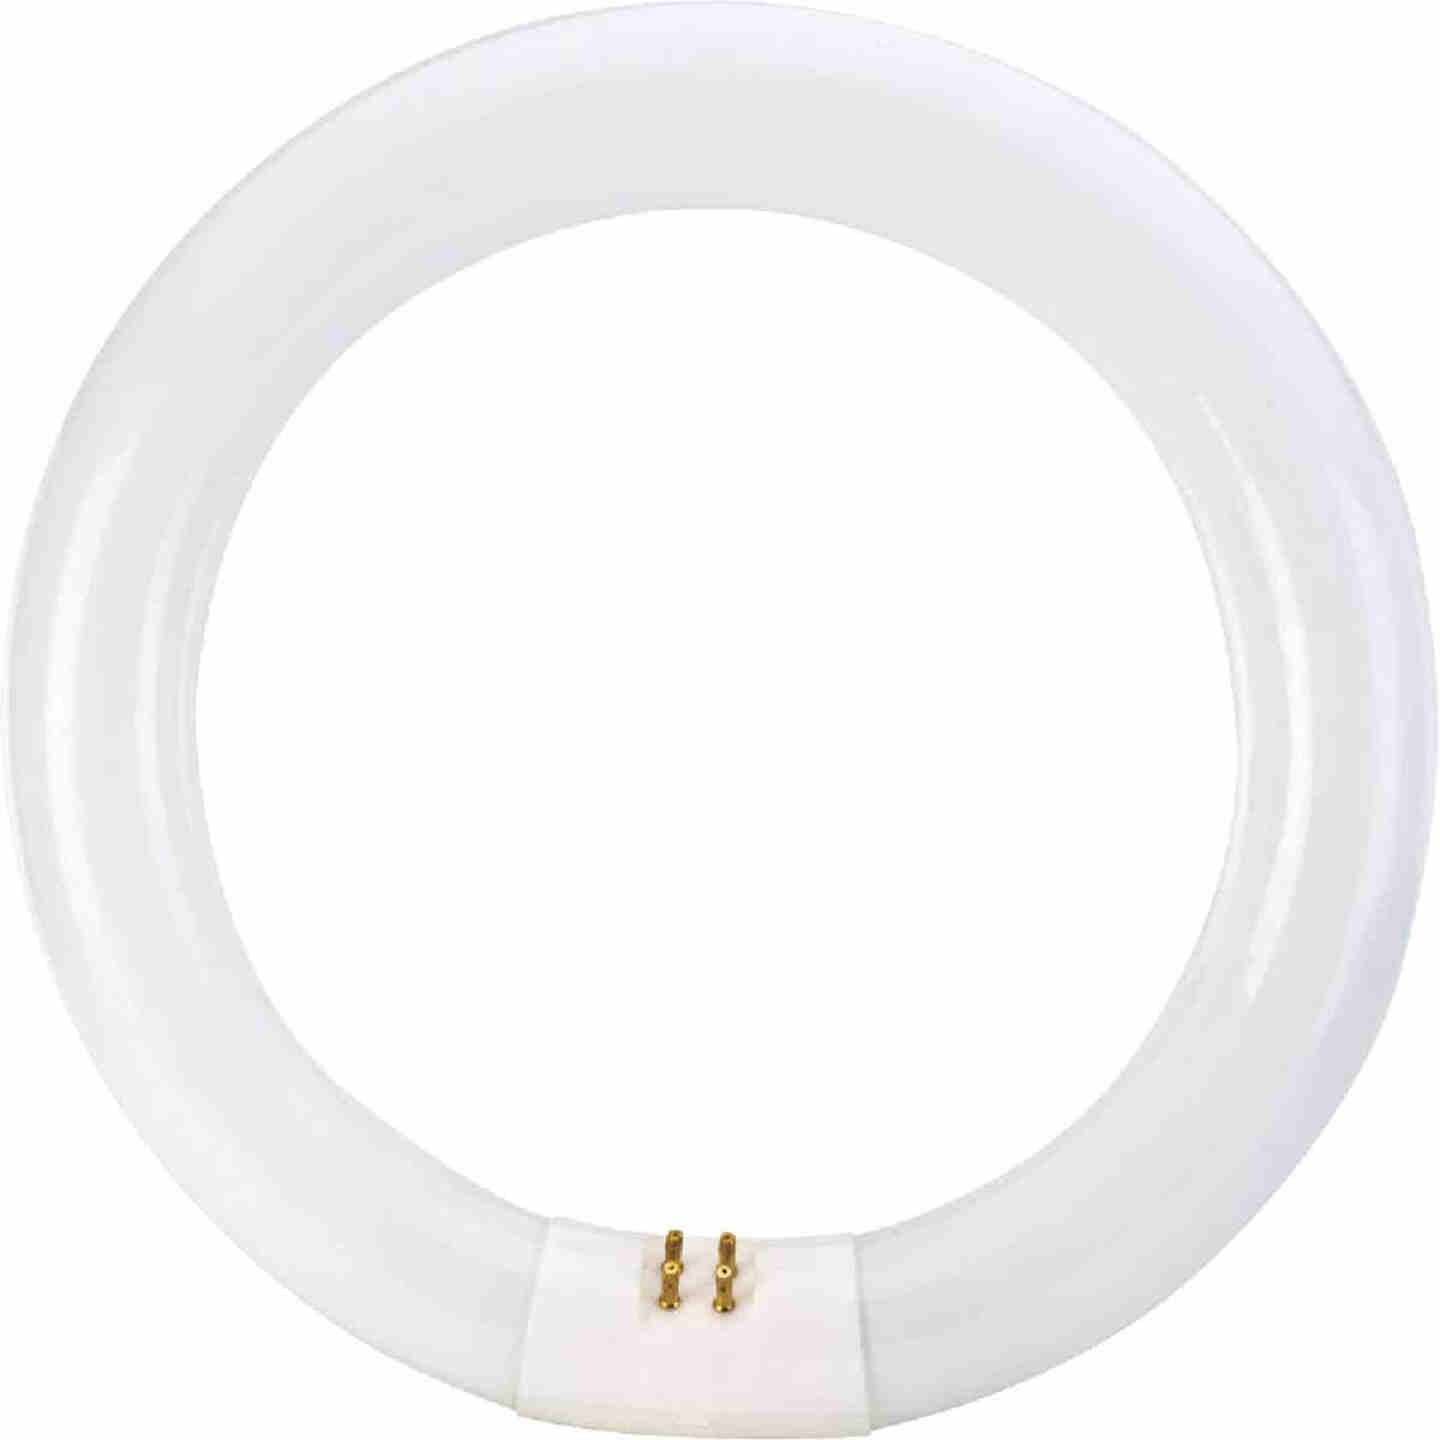 Philips 22W 8 In. Cool White T9 4-Pin Circline Fluorescent Tube Light Bulb Image 3